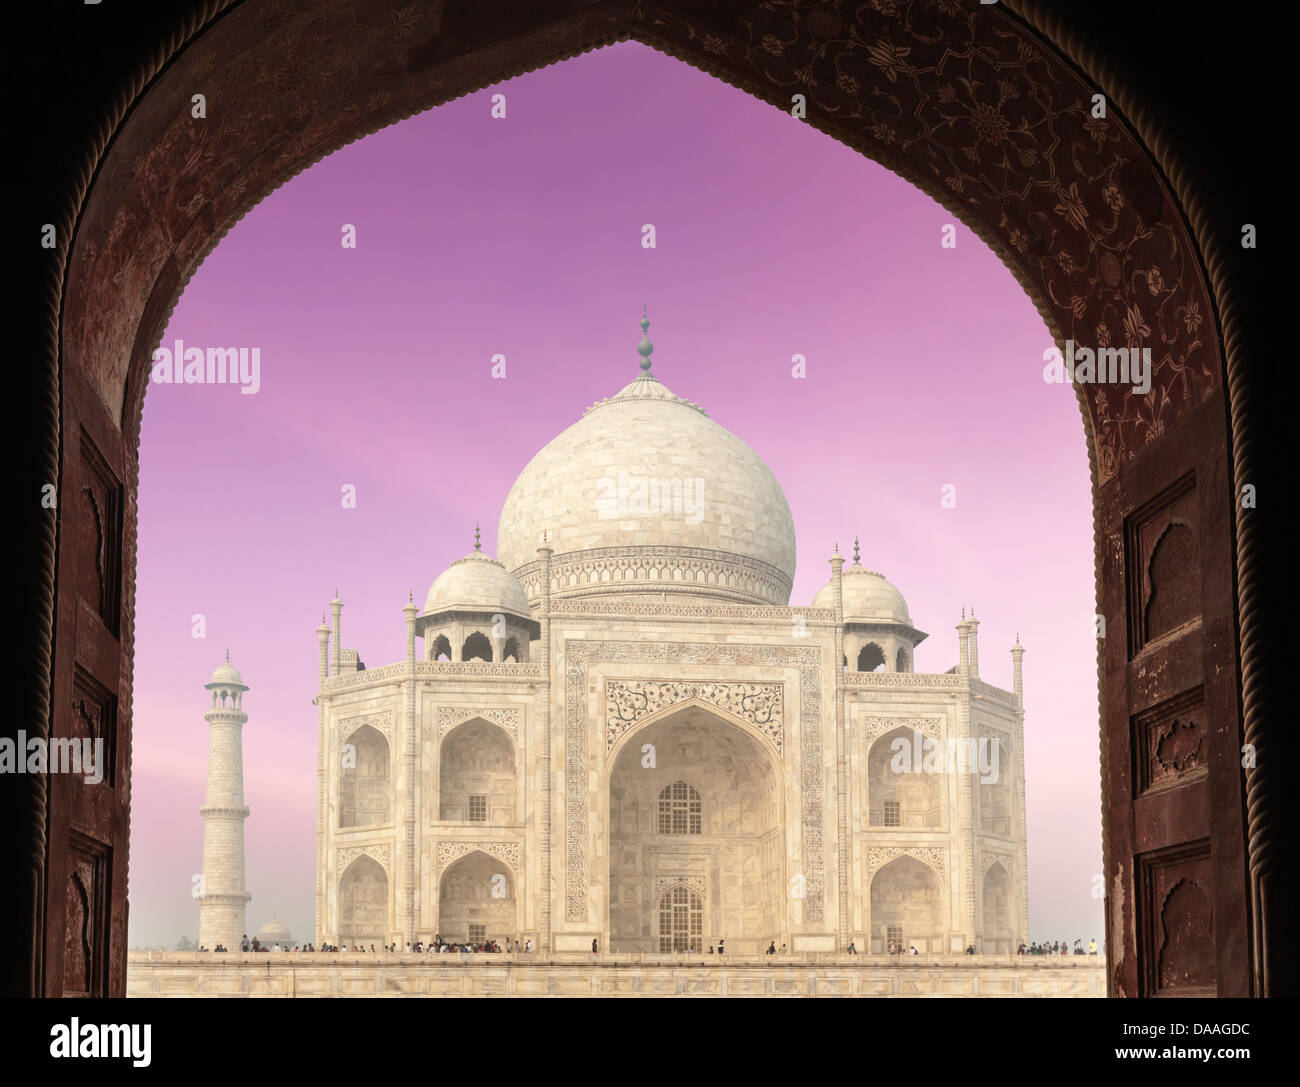 Taj Mahal attraverso arch, simbolo indiano - India travel background. Agra, Uttar Pradesh, India Immagini Stock